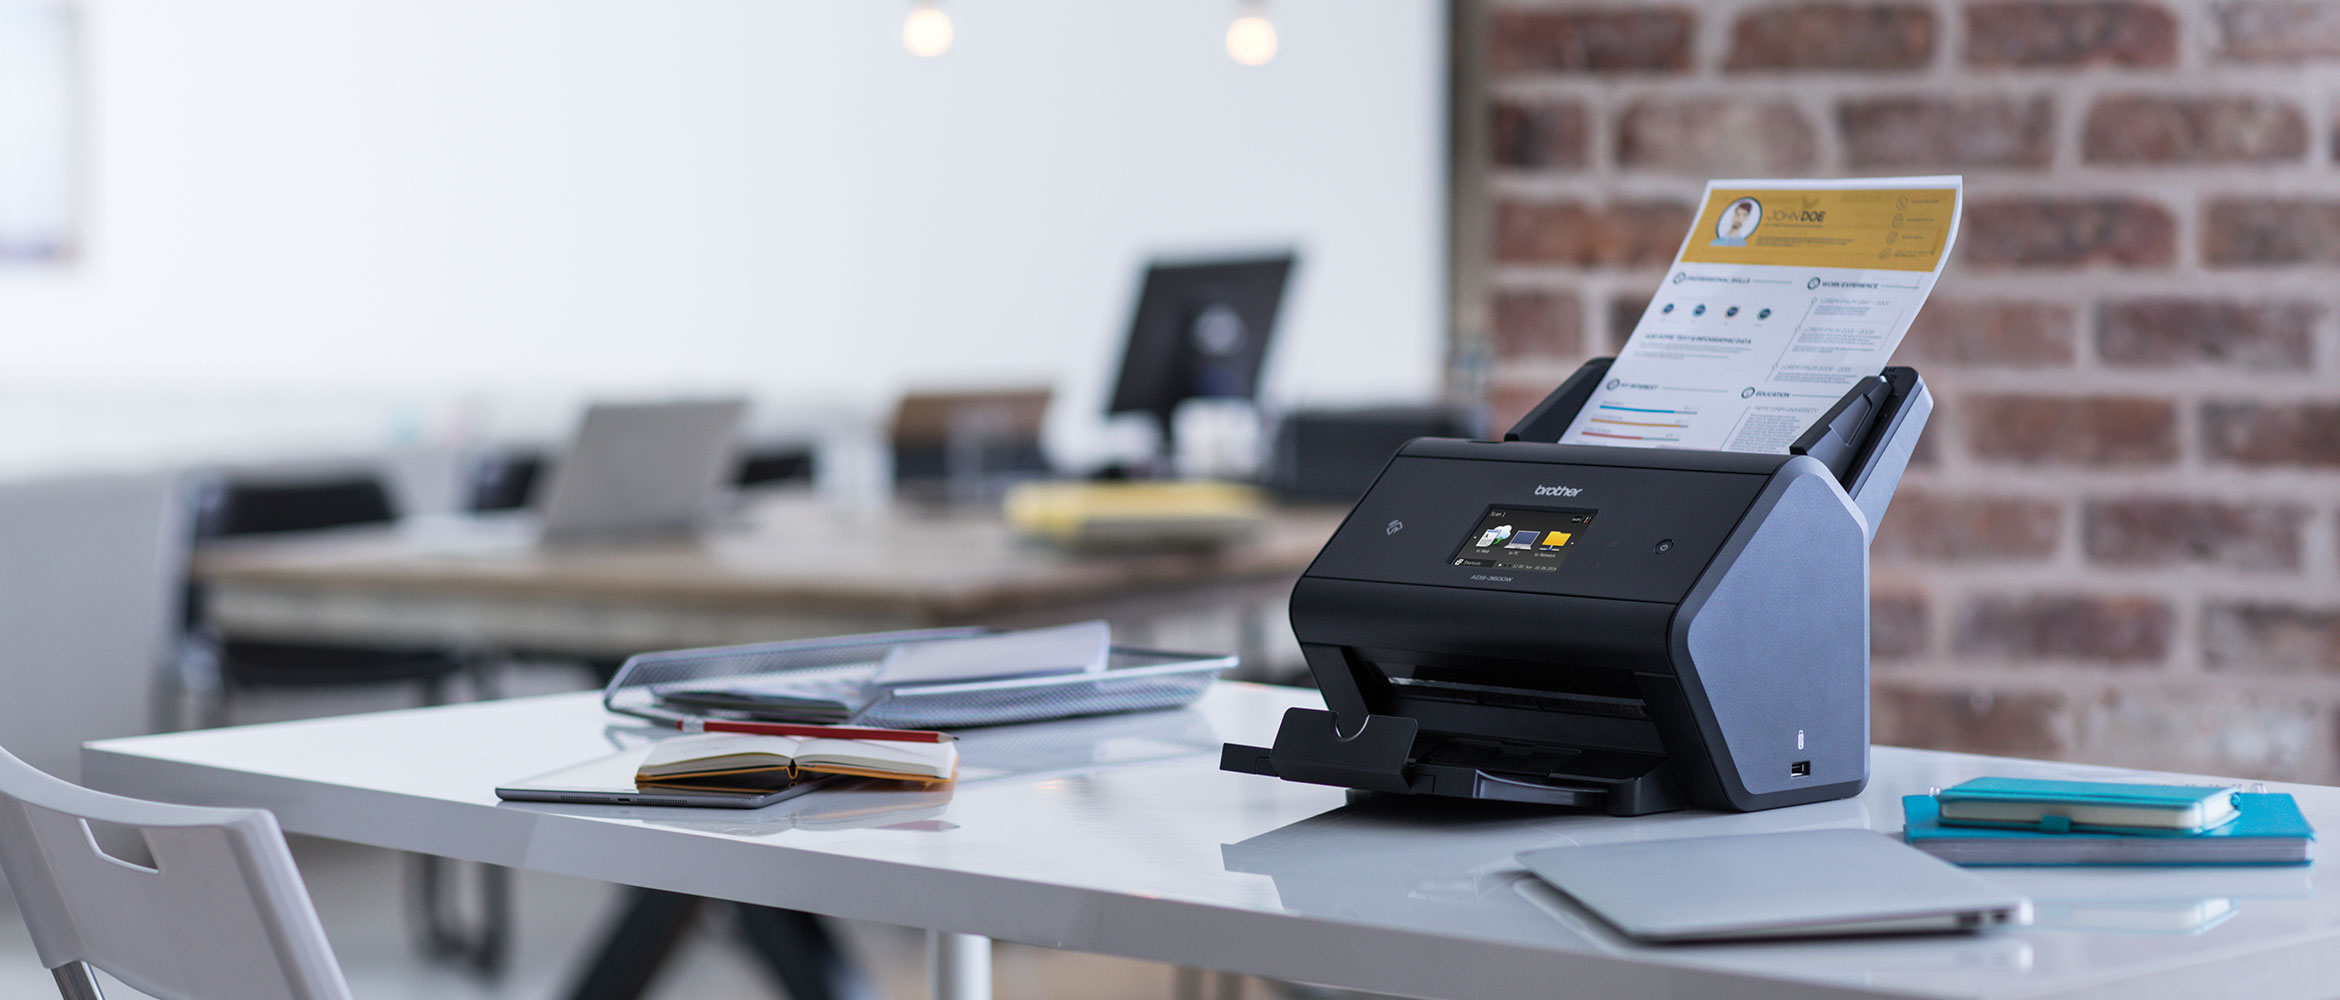 Scanner Brother ADS-3600W sopra una scrivania di un ufficio